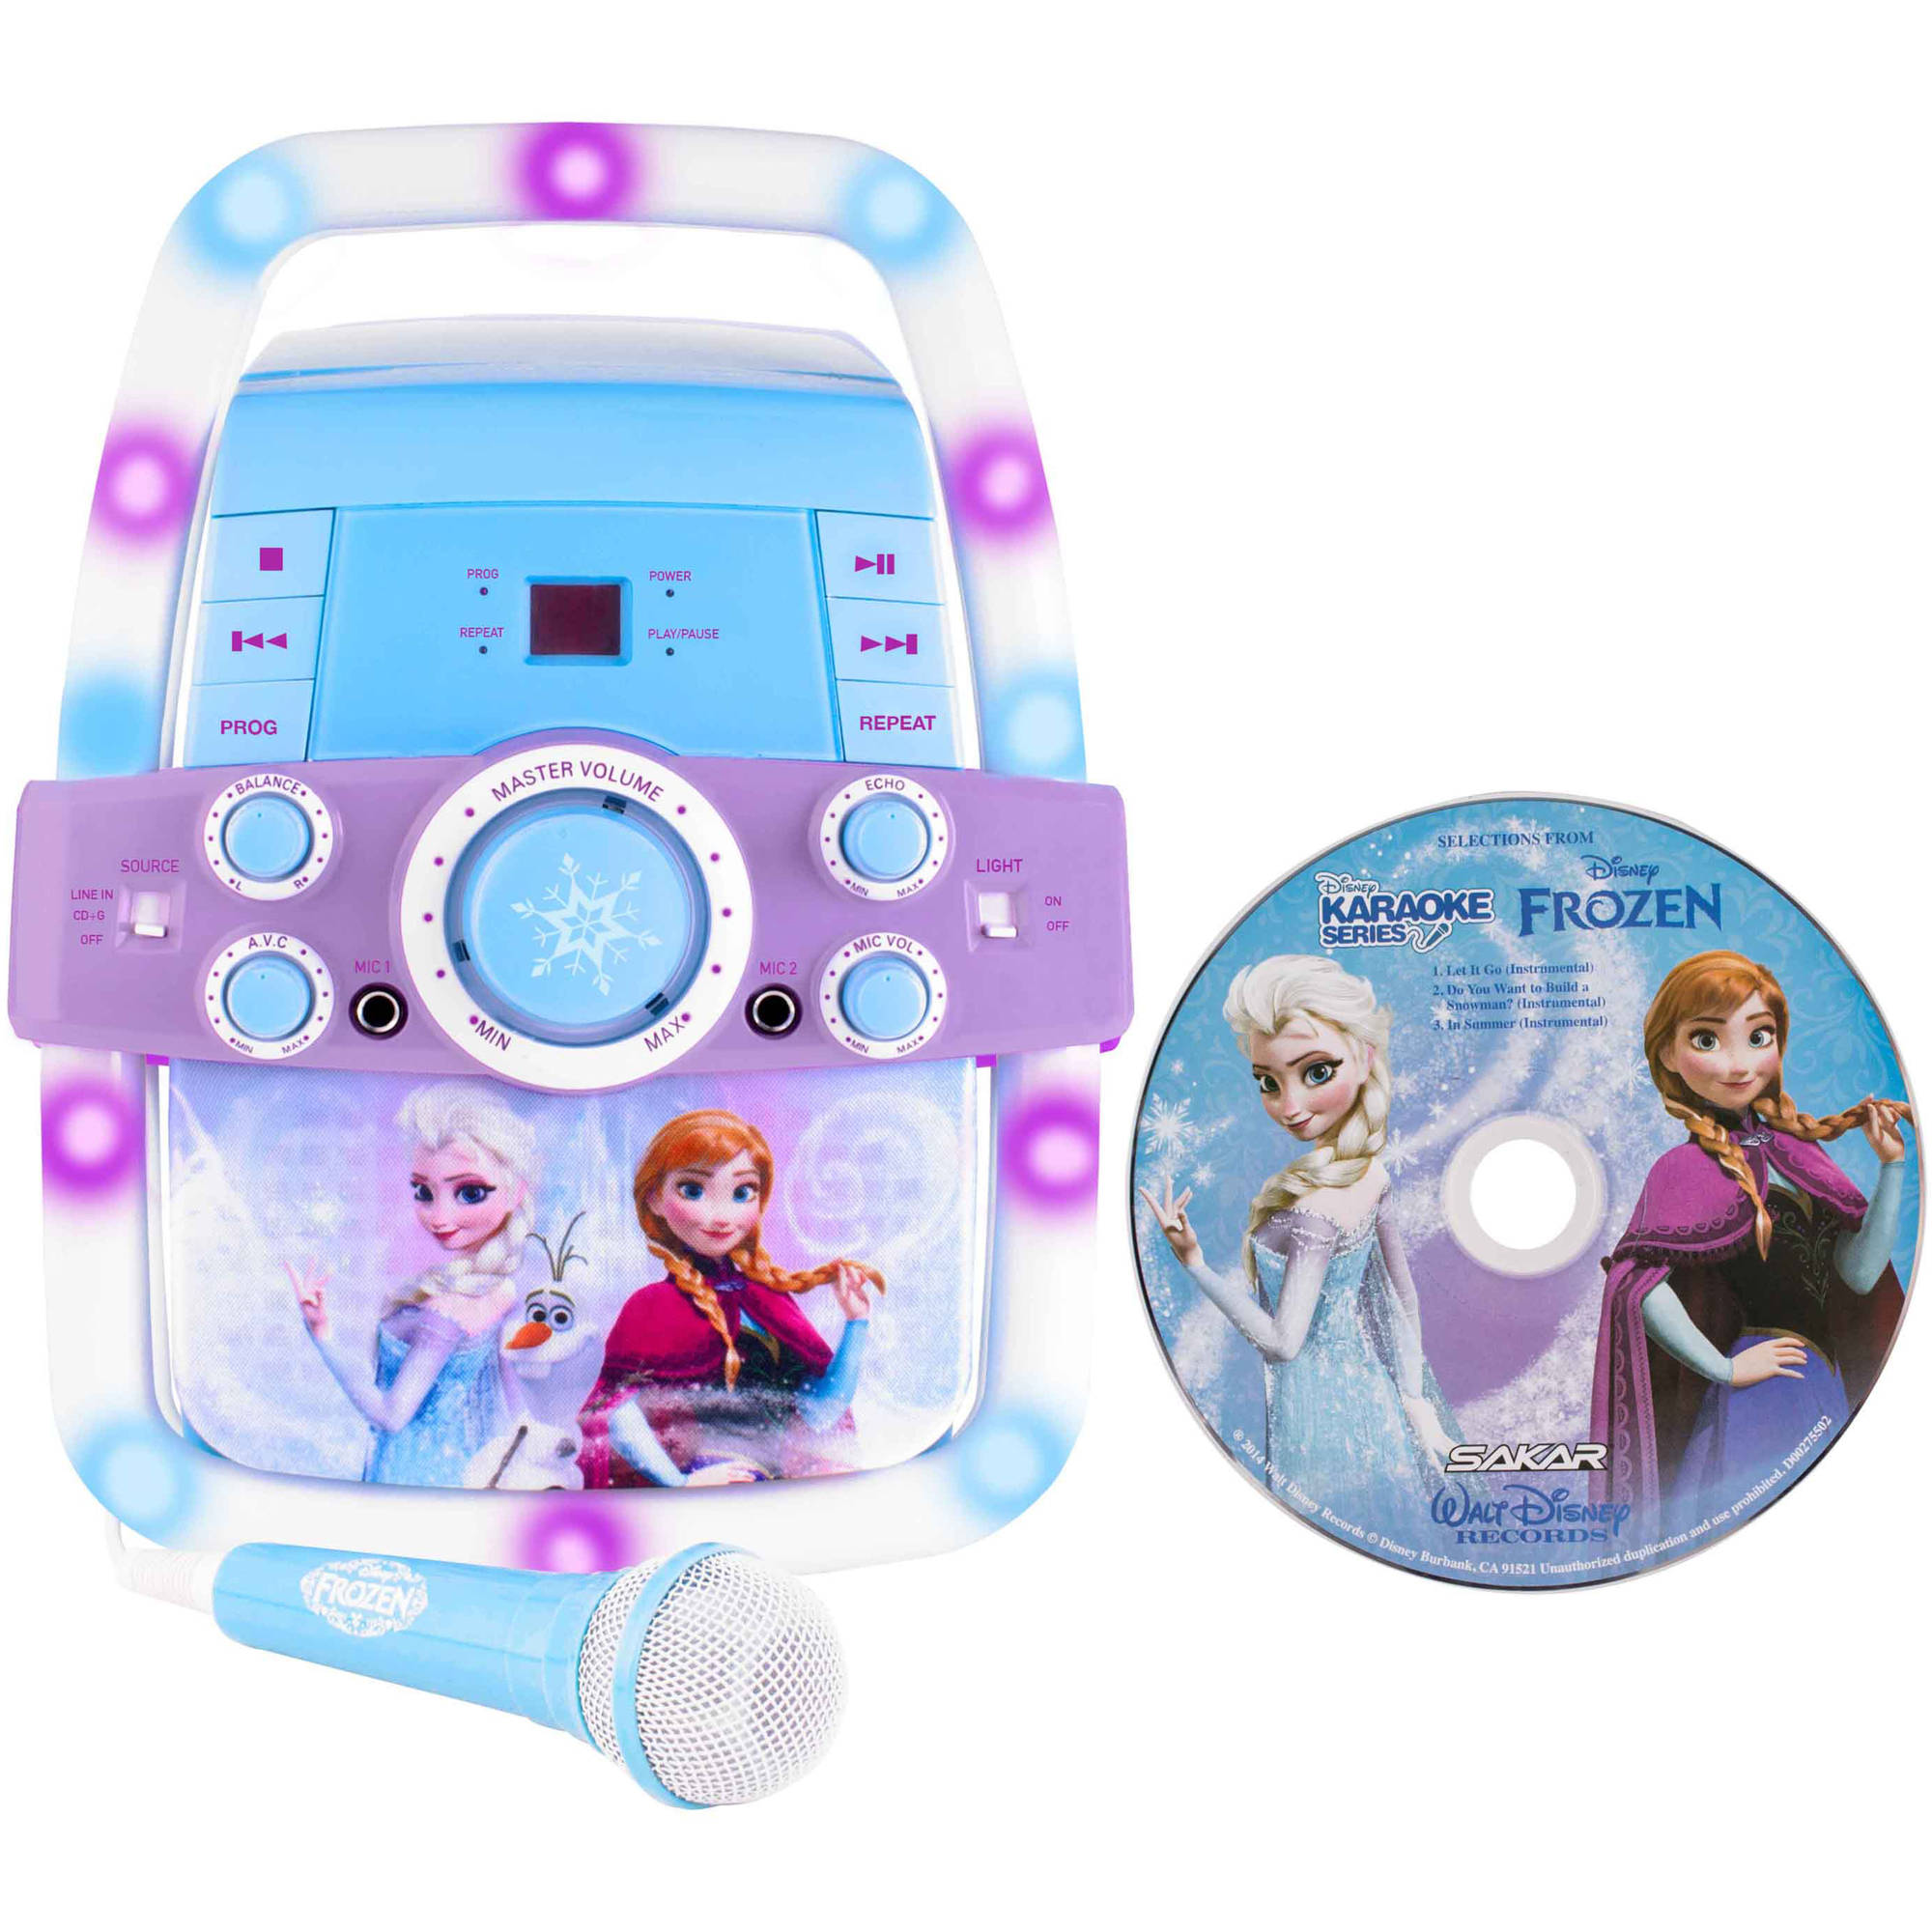 Frozen, Princess, Hello Kitty, & The Voice Flashing Bar Karaoke by Sakar International